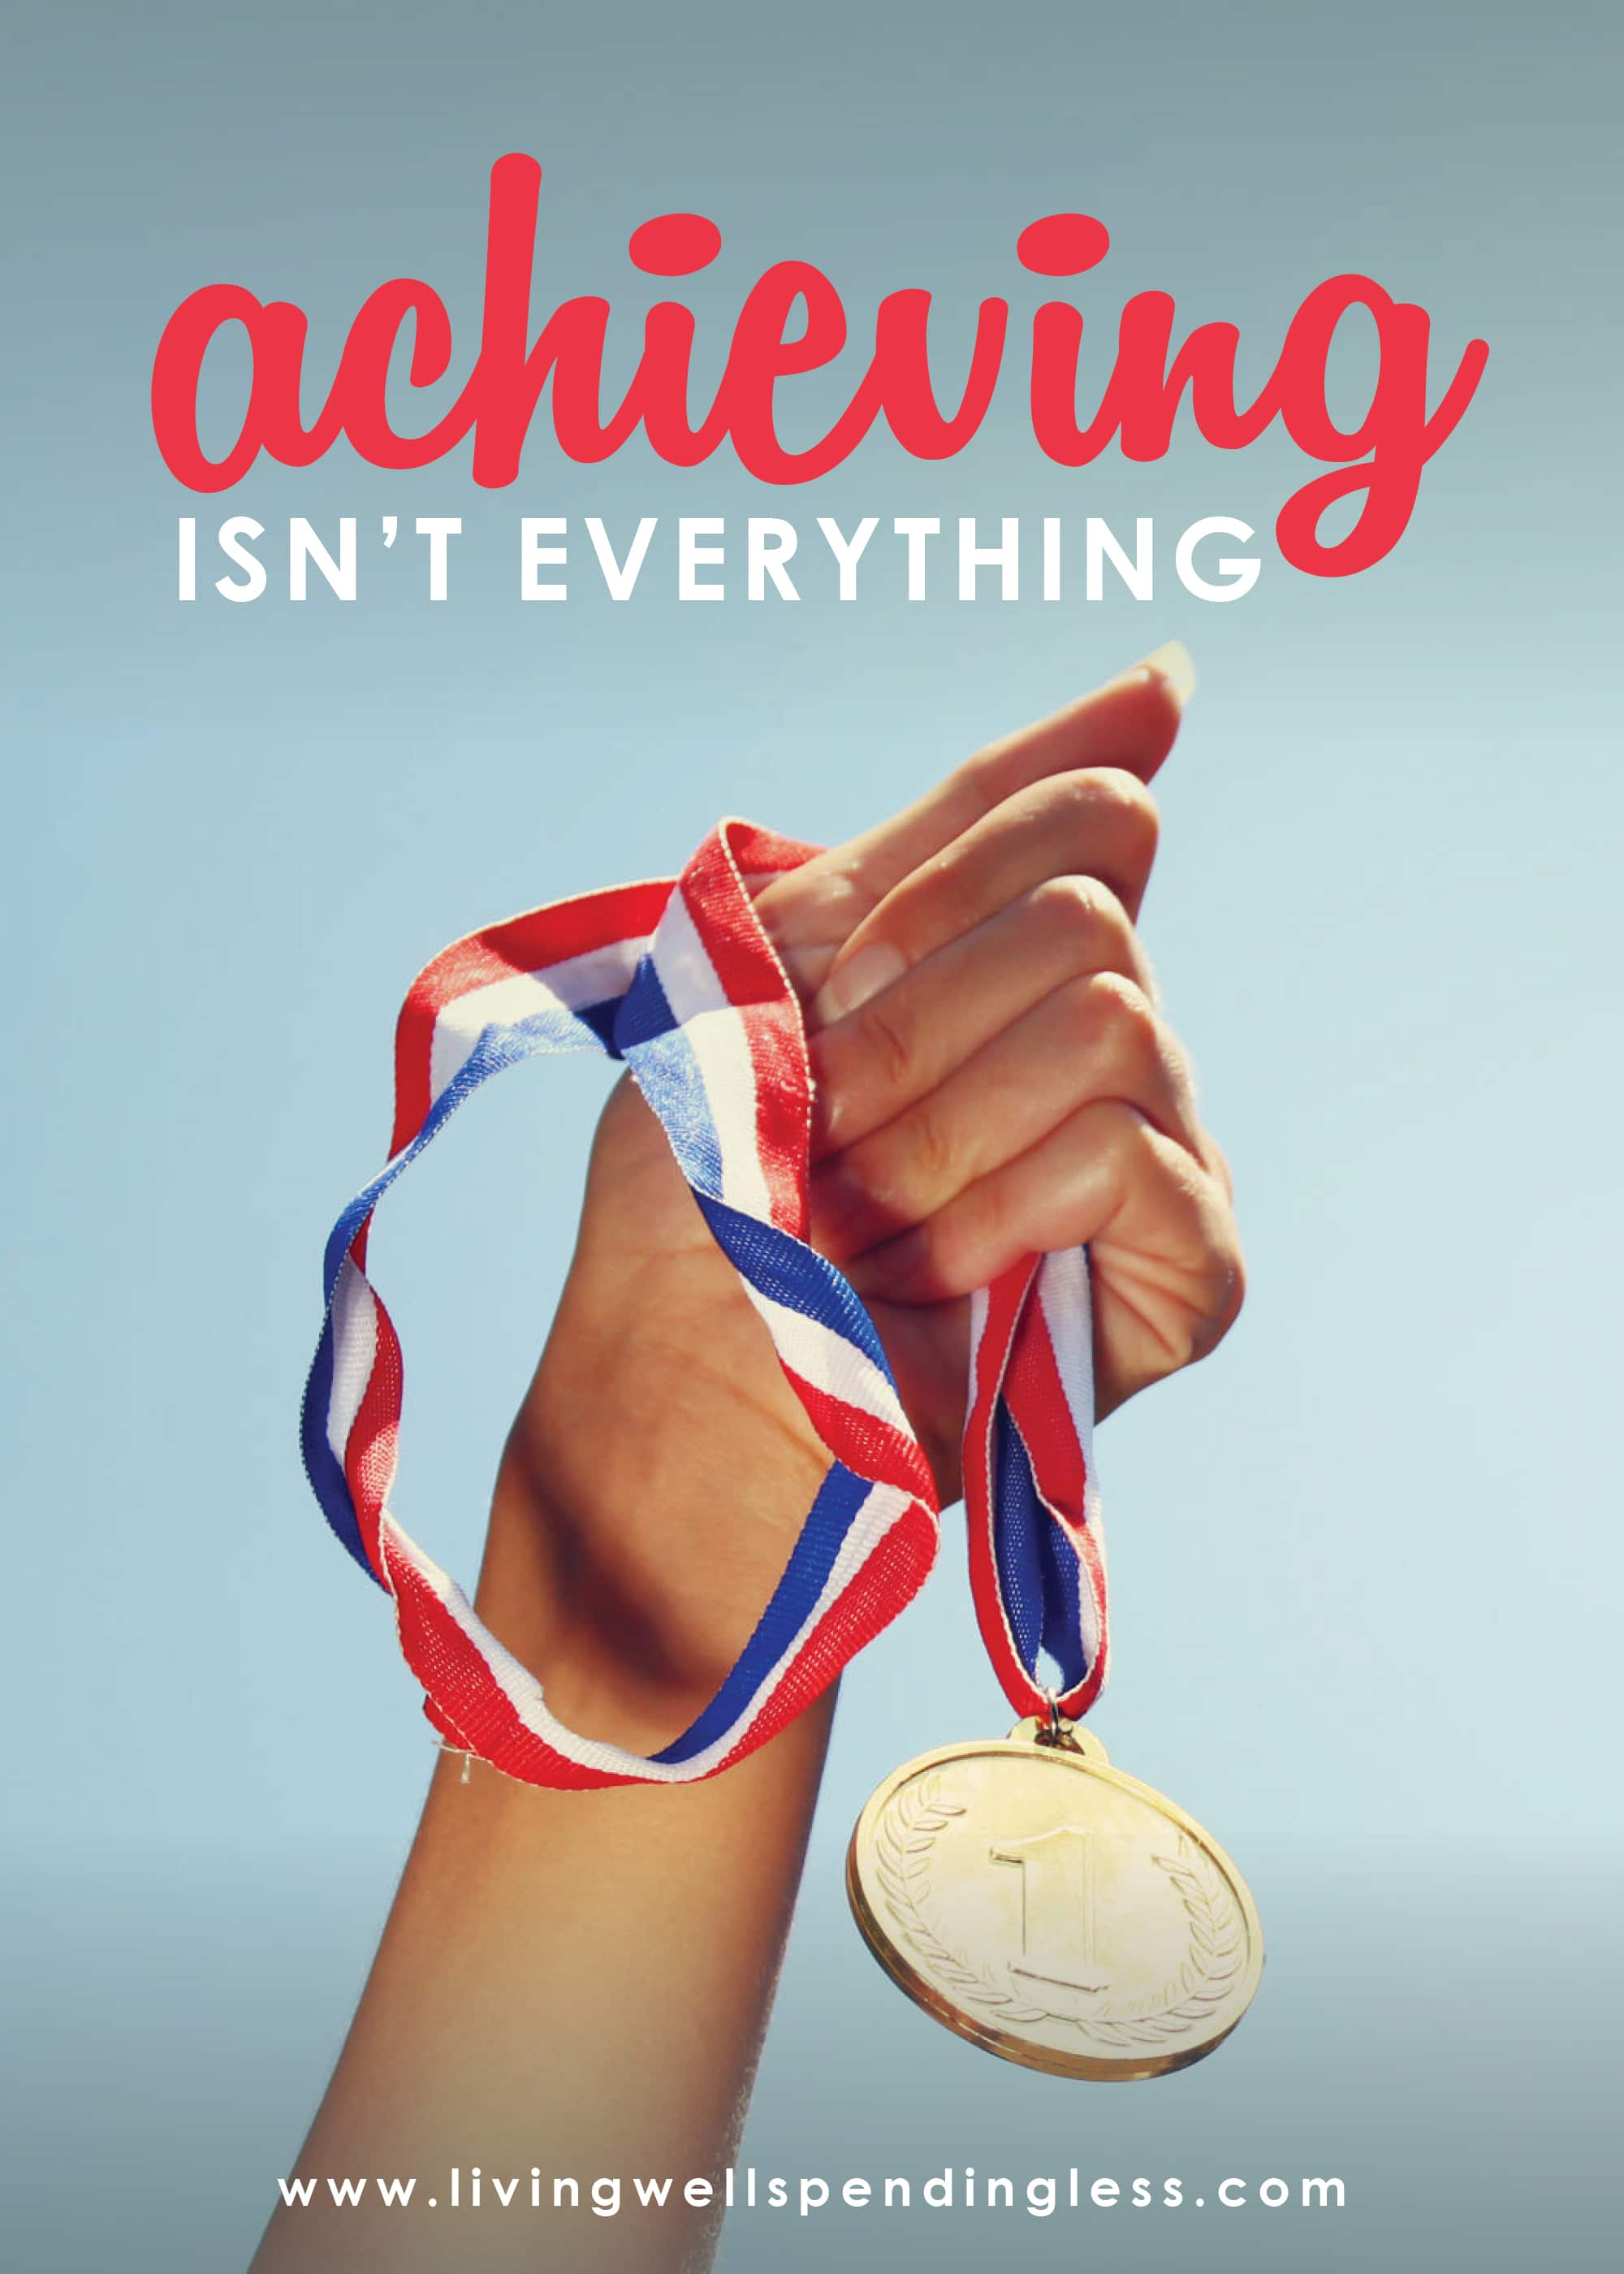 Achieving isn't everything is this week's podcast episode topic.